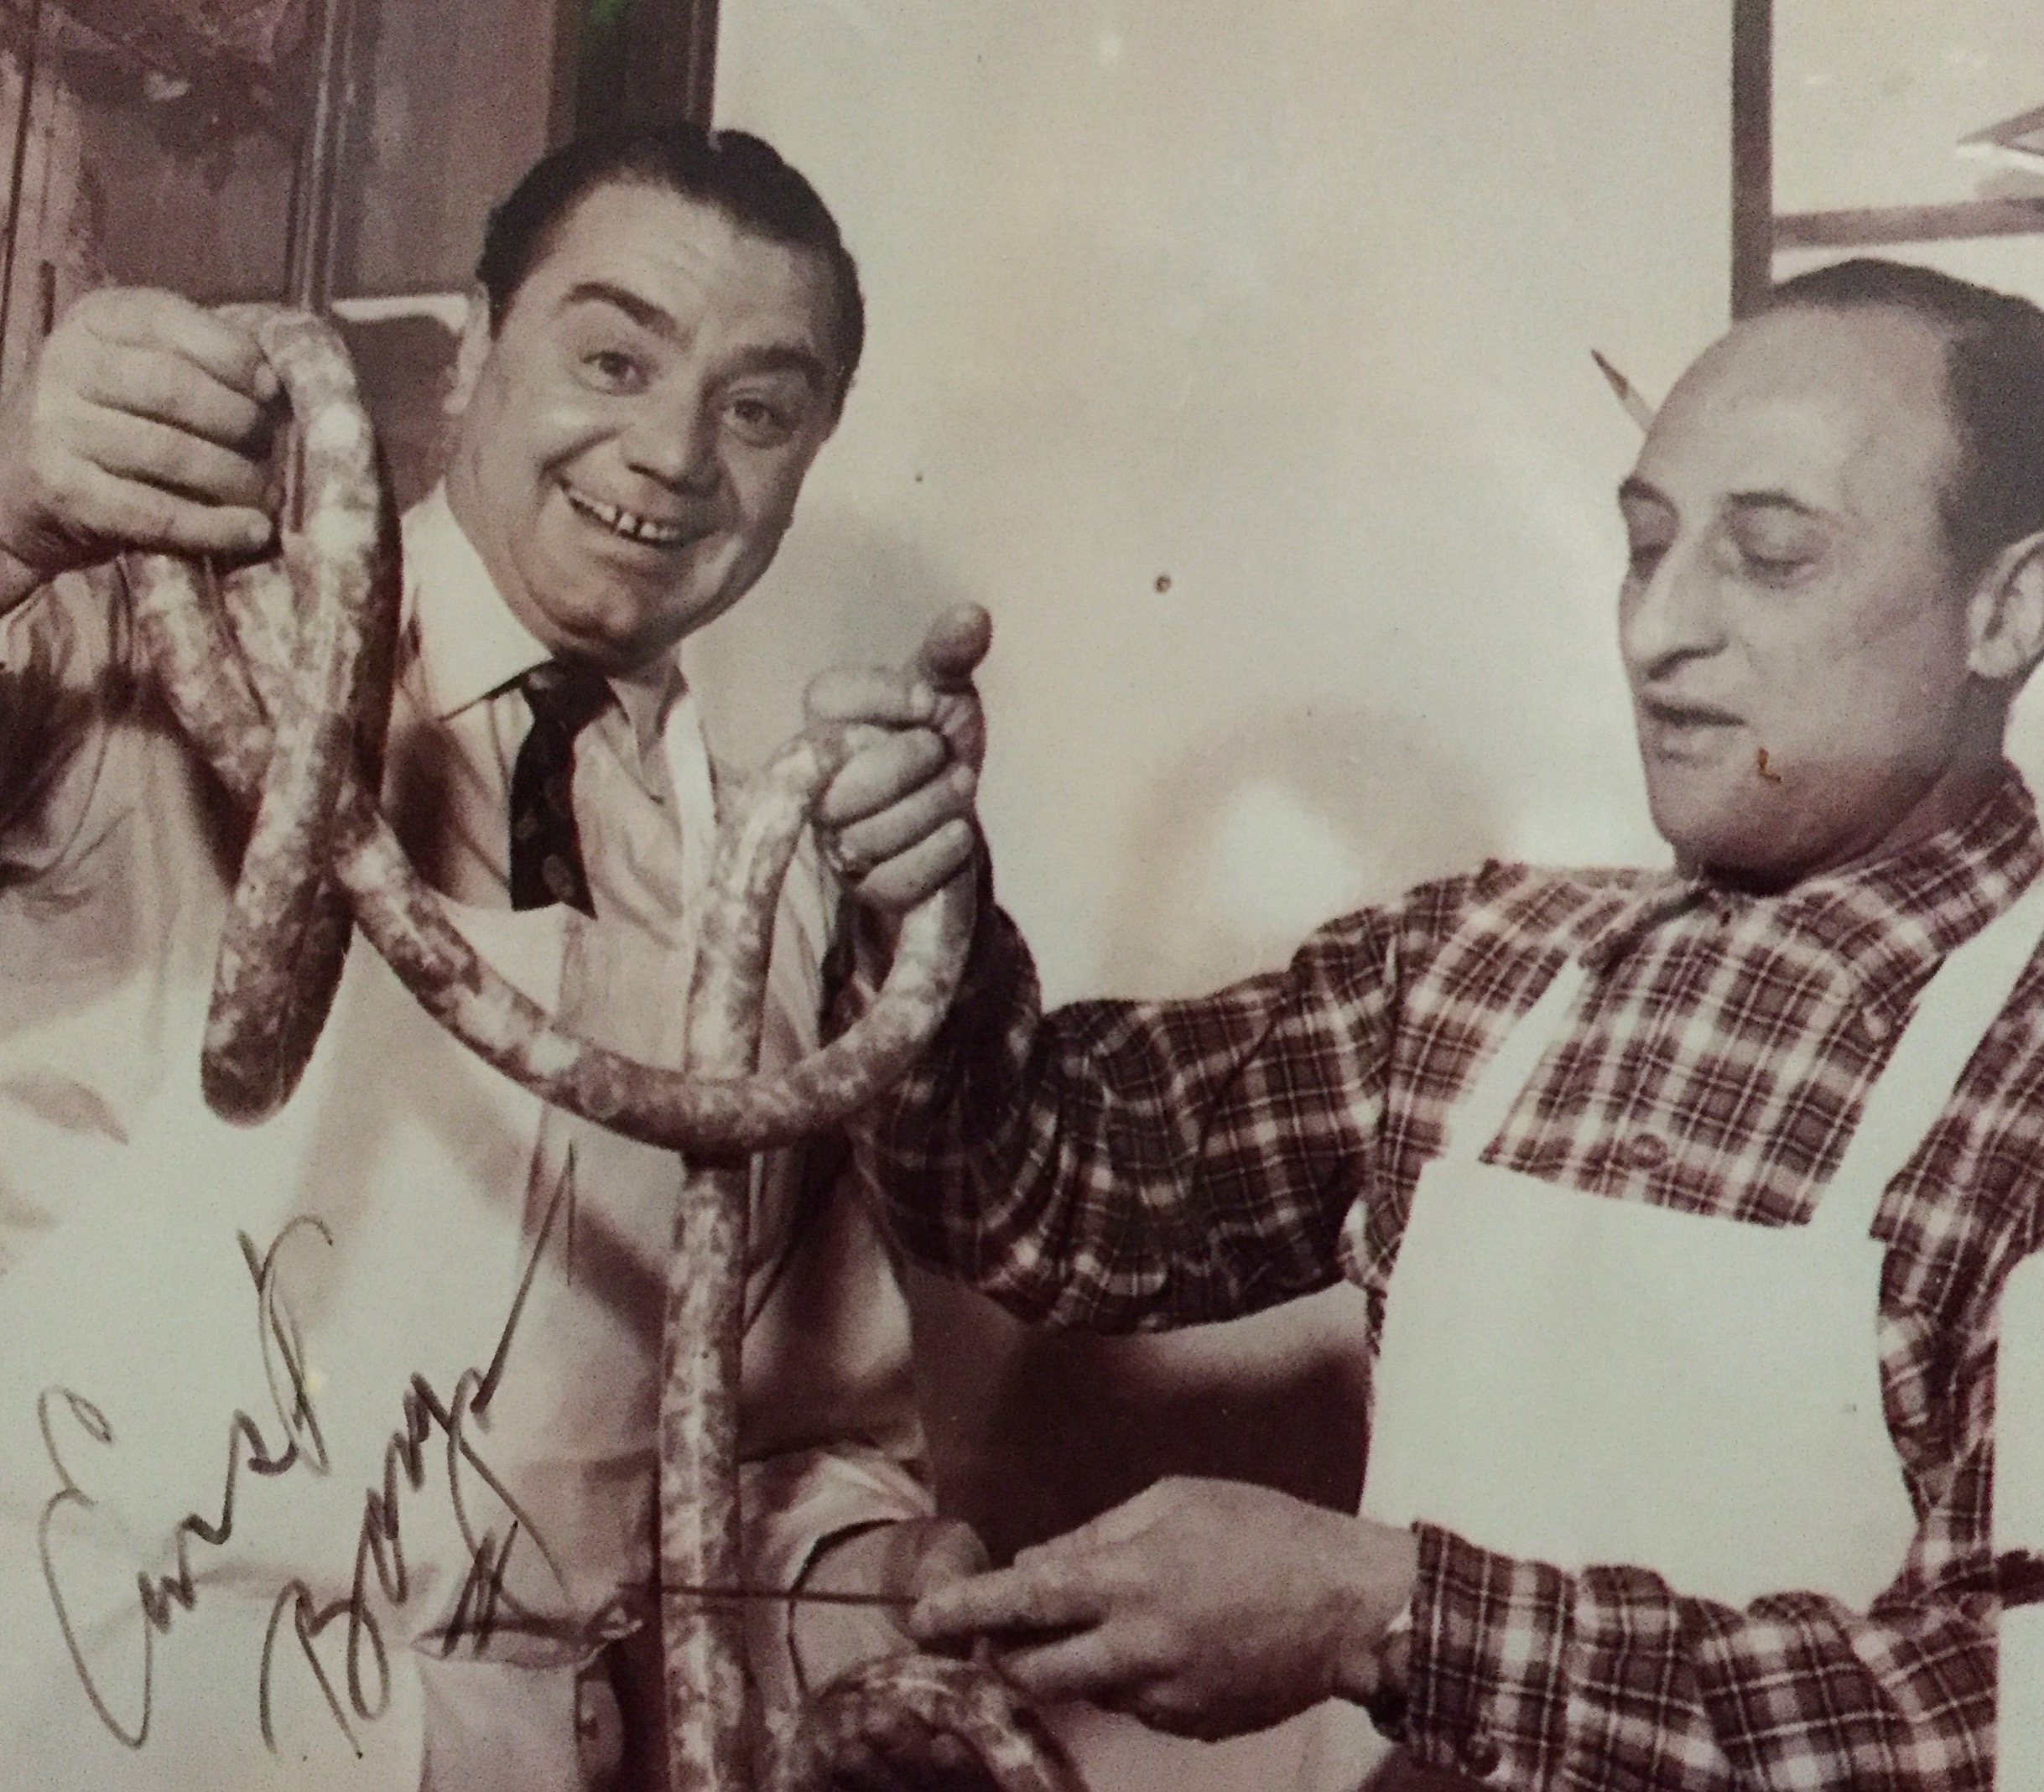 """The Academy Award winning film """"Marty"""" was shot inside Danielle's family butcher shop, now Vincent's Meat Market on Arthur Avenue. This picture shows Ernest Borgnine with her uncle, John Oteri."""